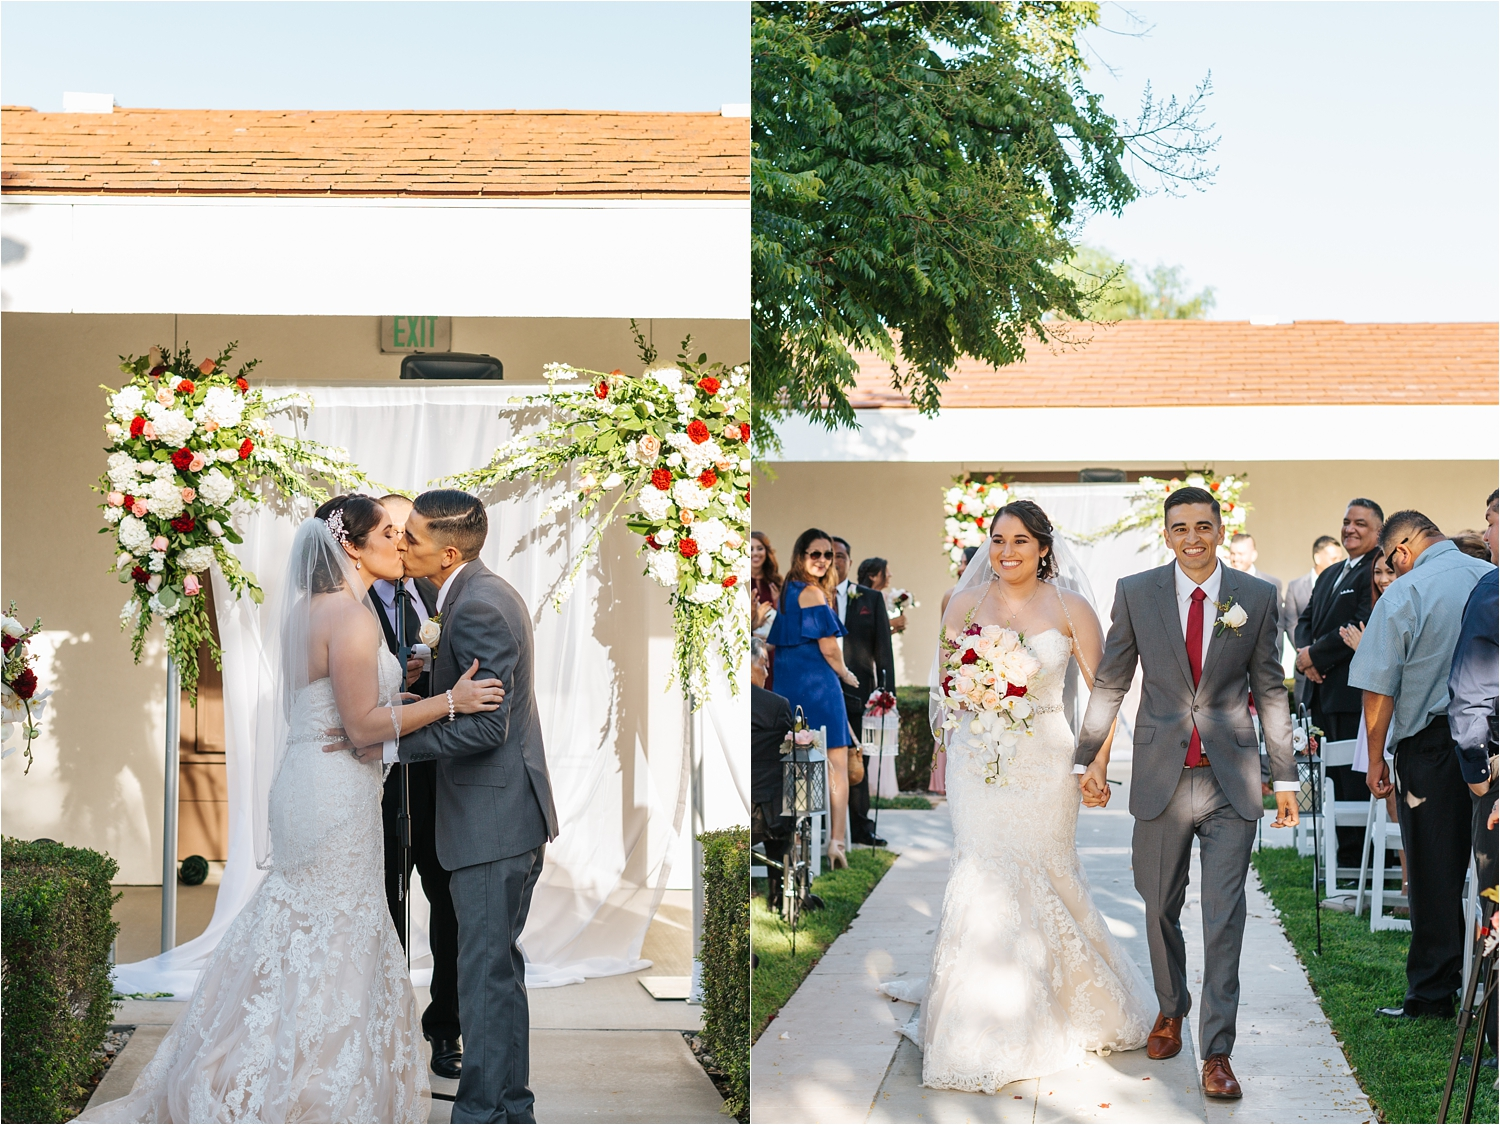 Just Married! Wedding Ceremony at Chaffey College - https://brittneyhannonphotography.com